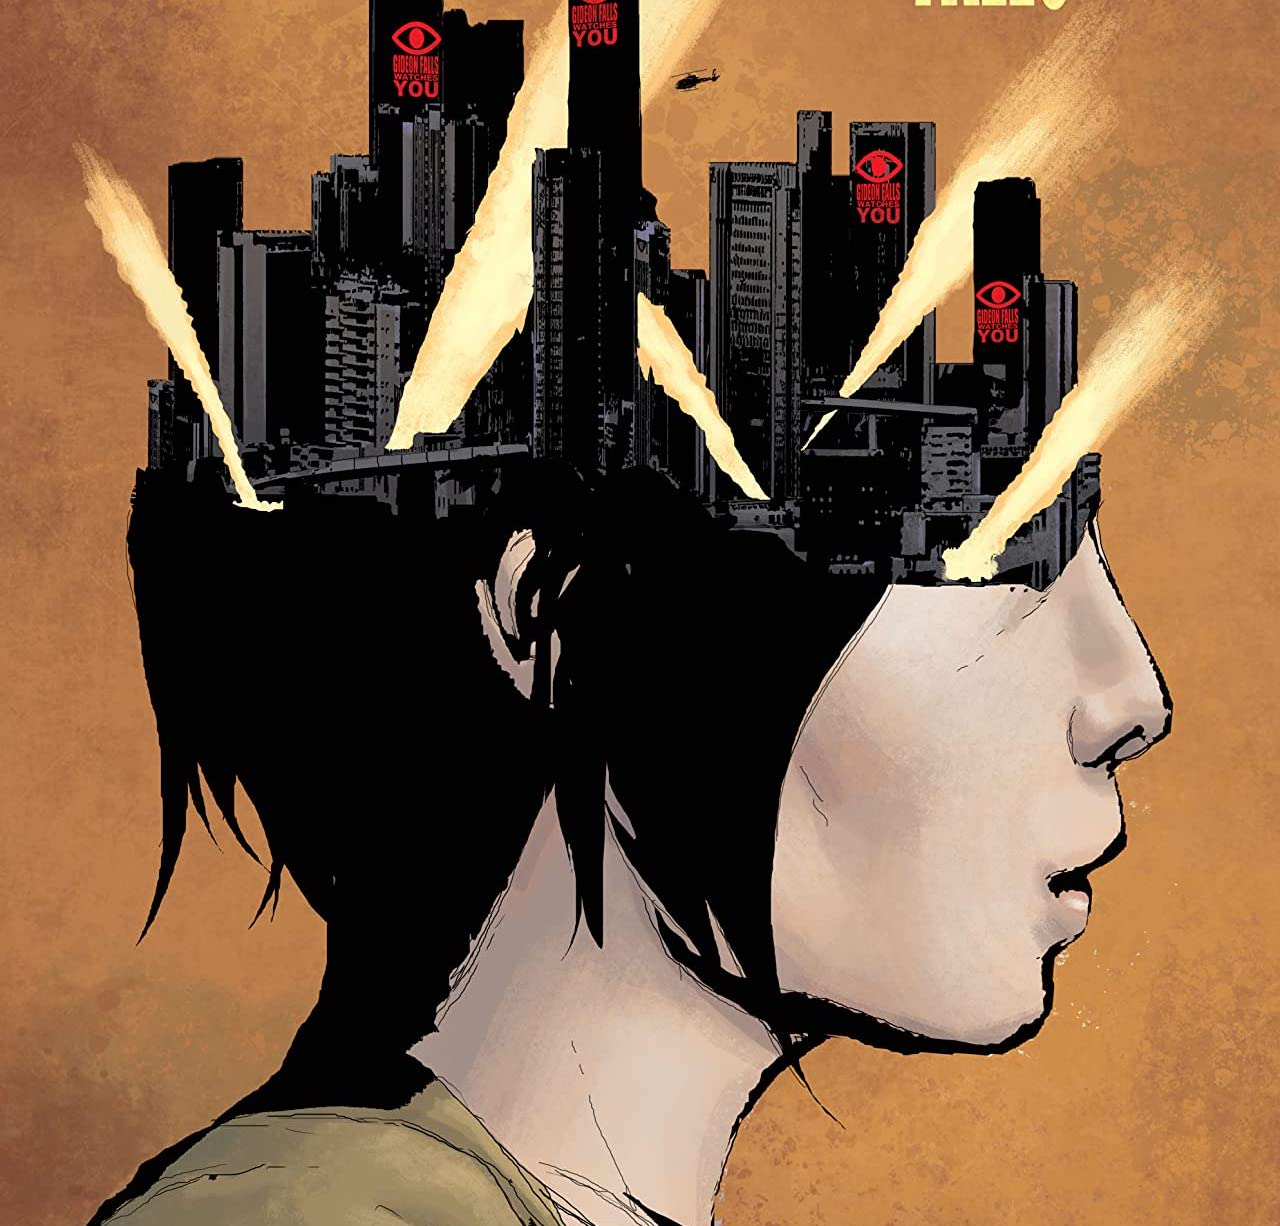 It's the exploration of new worlds in Gideon Falls #22.